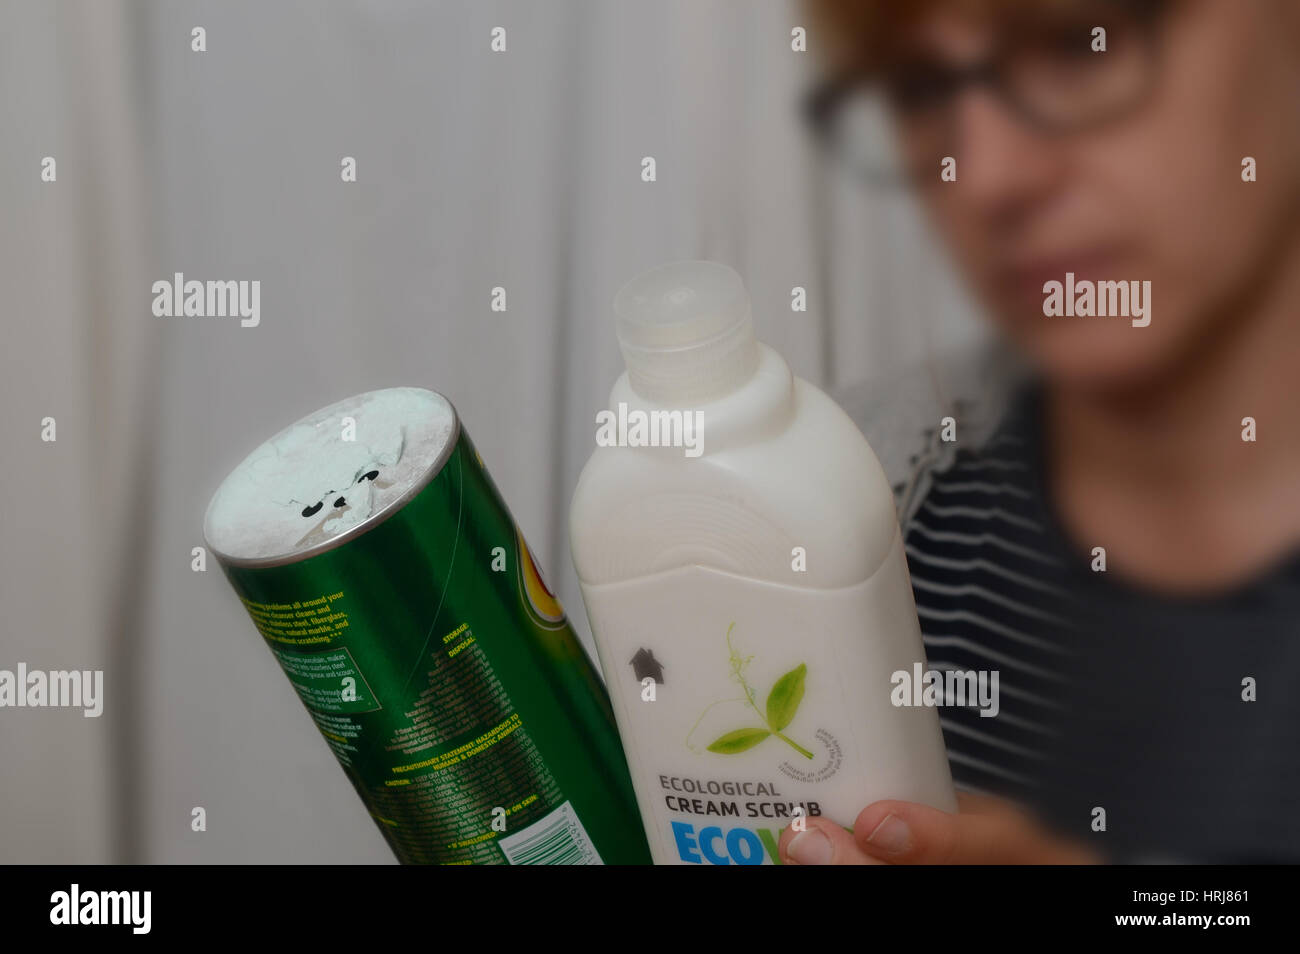 Natural versus Chemical Cleaners - Stock Image